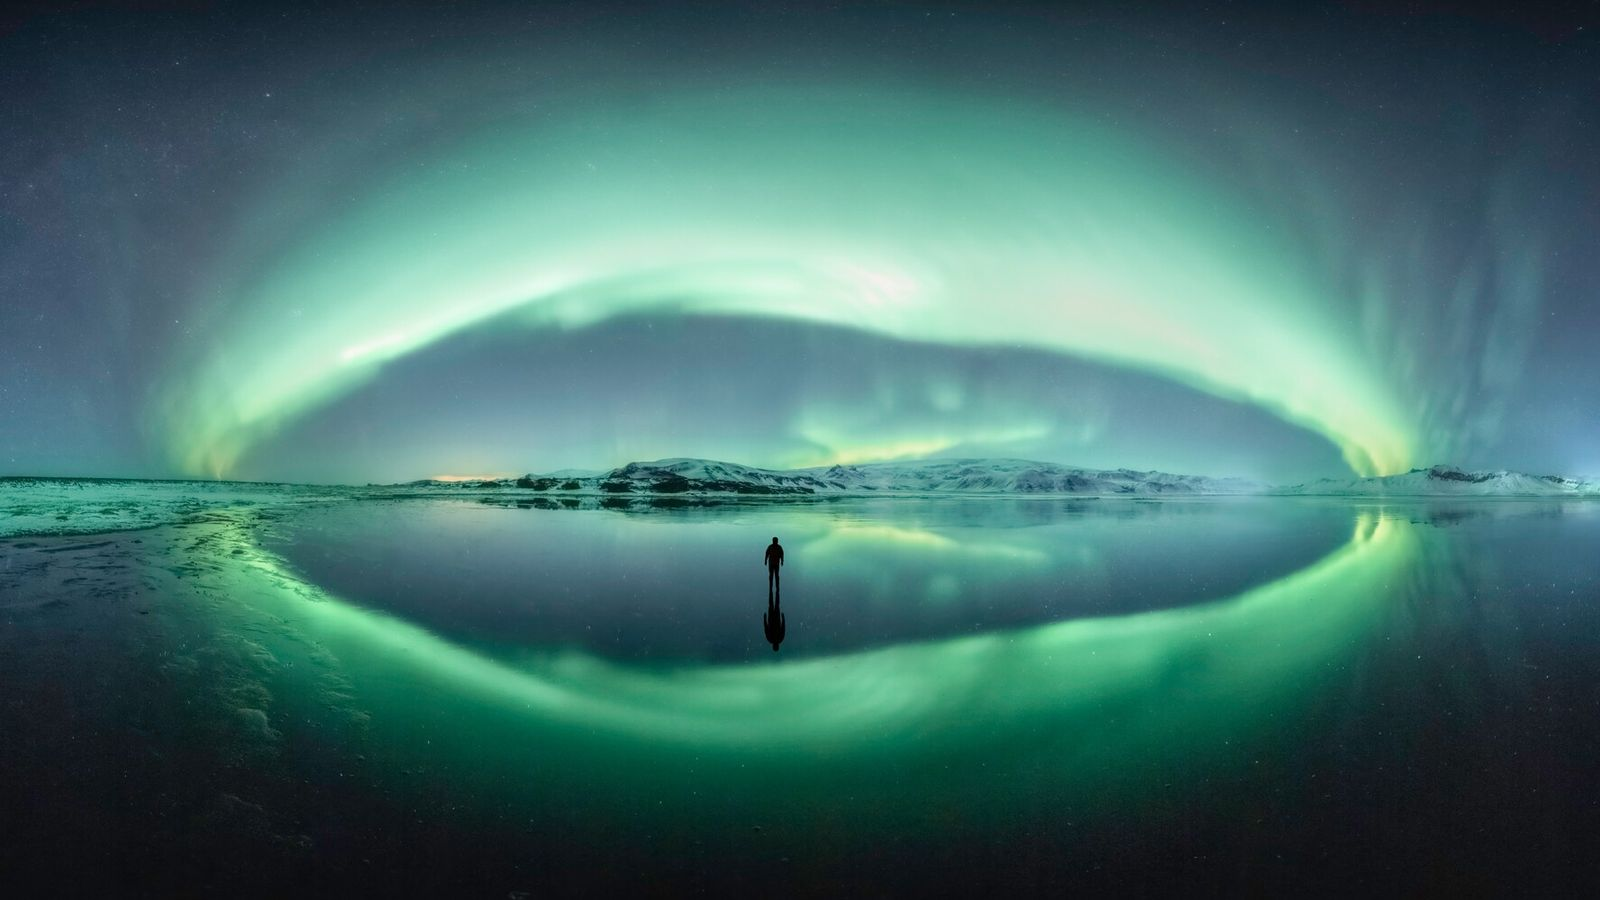 Comprised of 250 images to create a panorama, the photographer who captured this view of Vik, ...